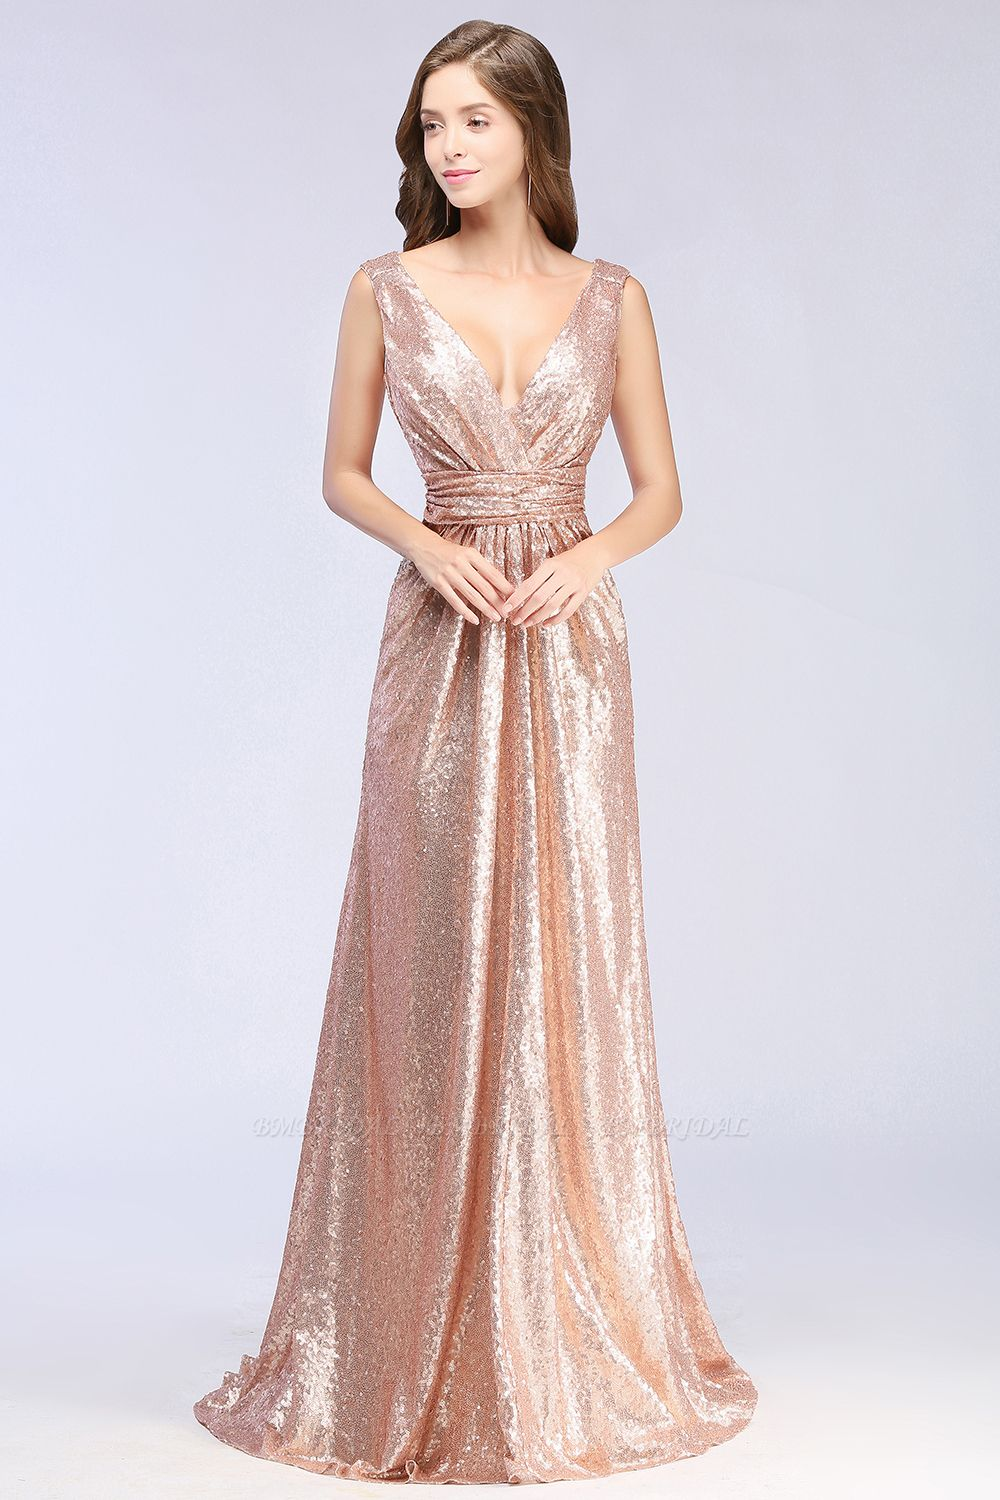 Sparkly Sequined V-Neck Sleeveless Bridesmaid Dress Online